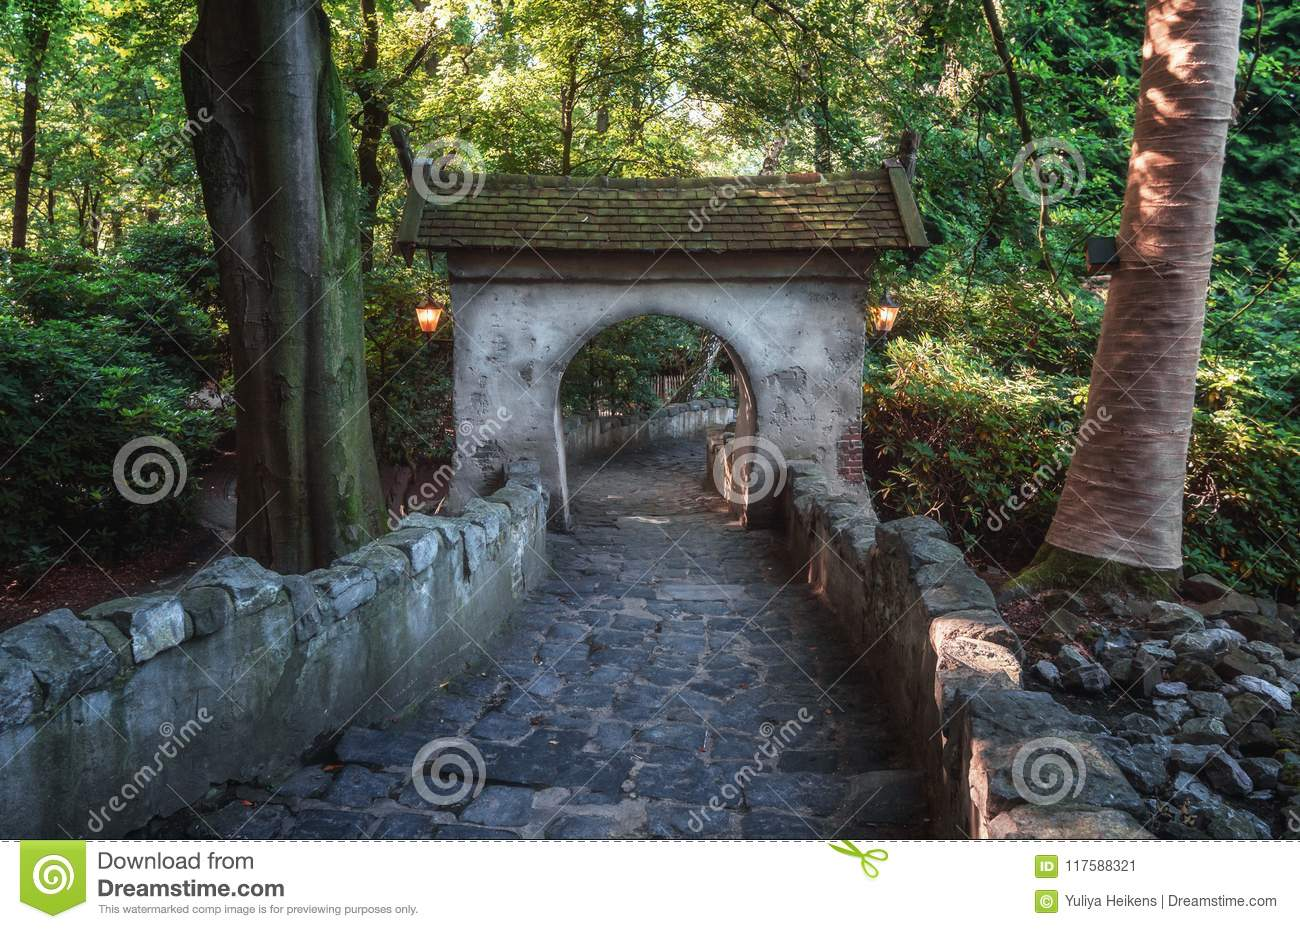 The entrance gate to the castle of Sleeping Beauty in the fairytale forest in the theme park Efteling